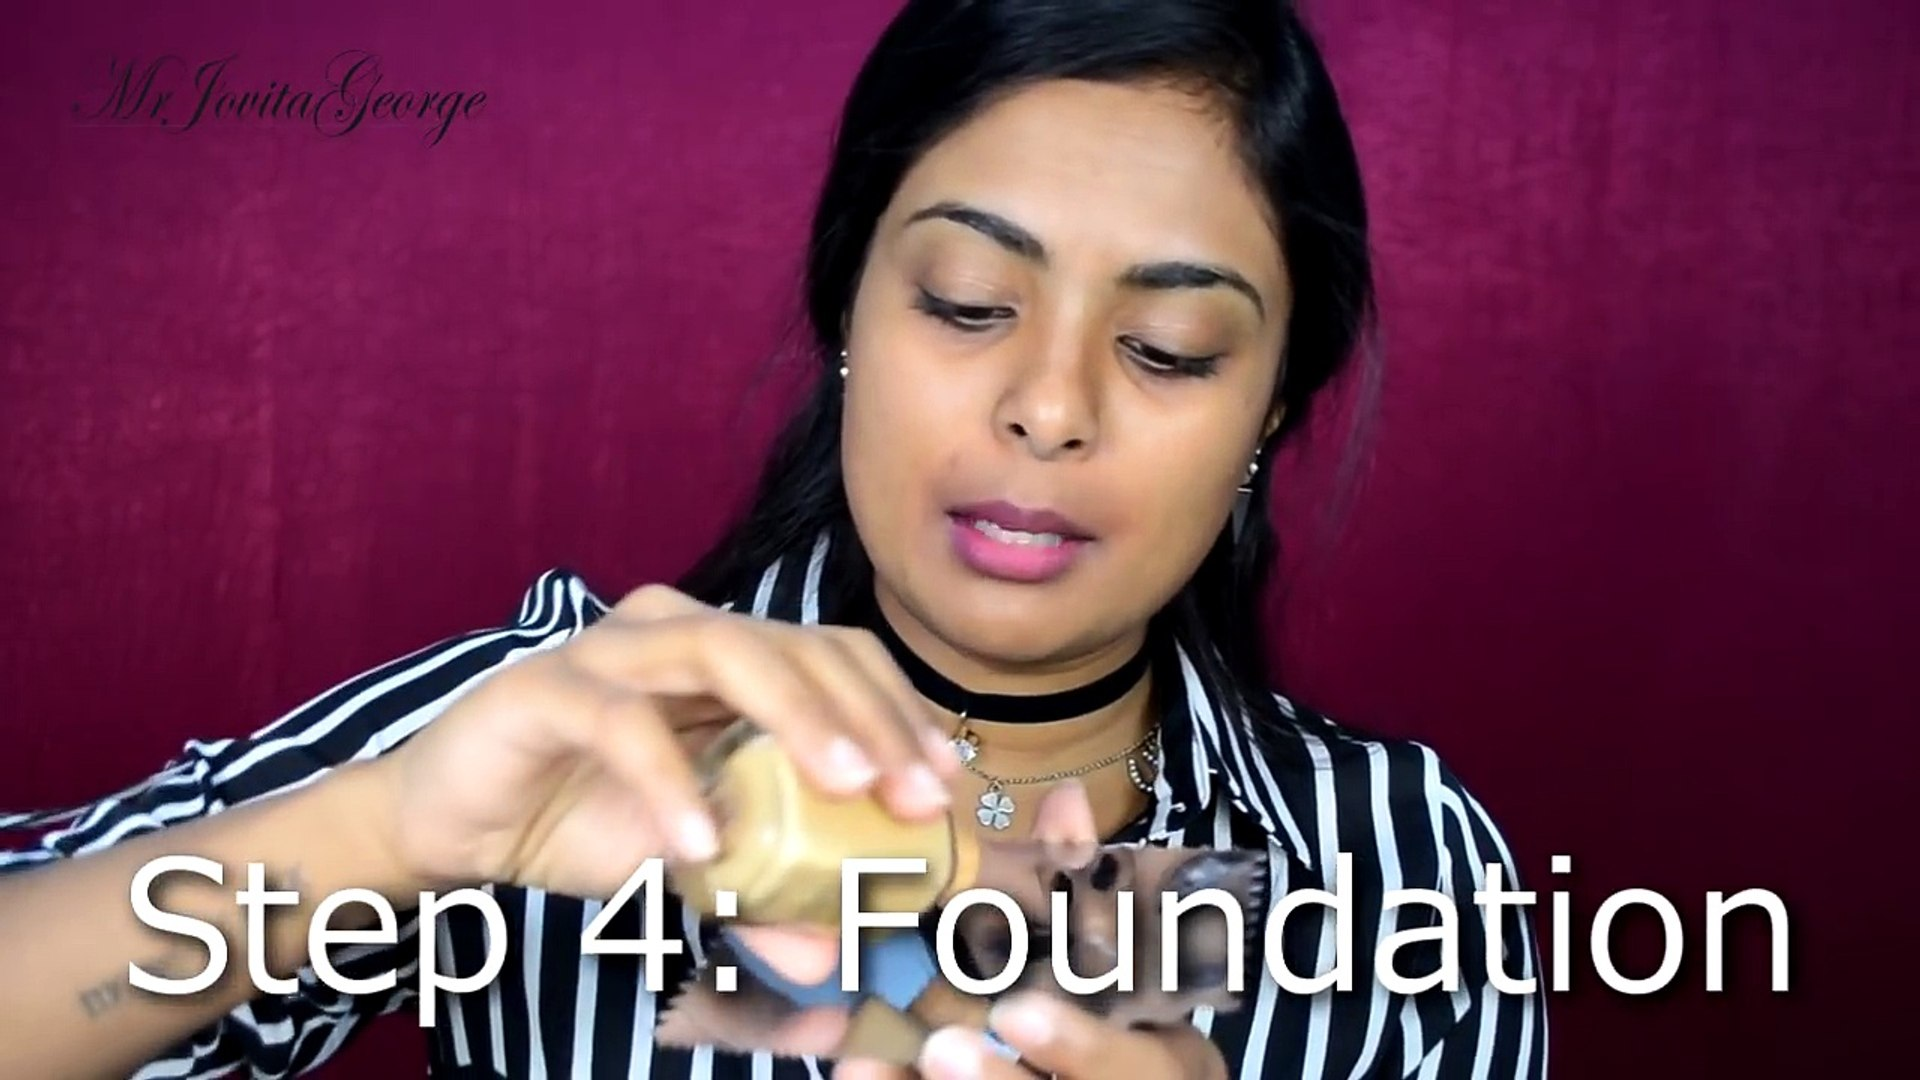 How To Apply Foundation To Cover Hyperpigmentation, Dark Spots For Flawless Even Skintone